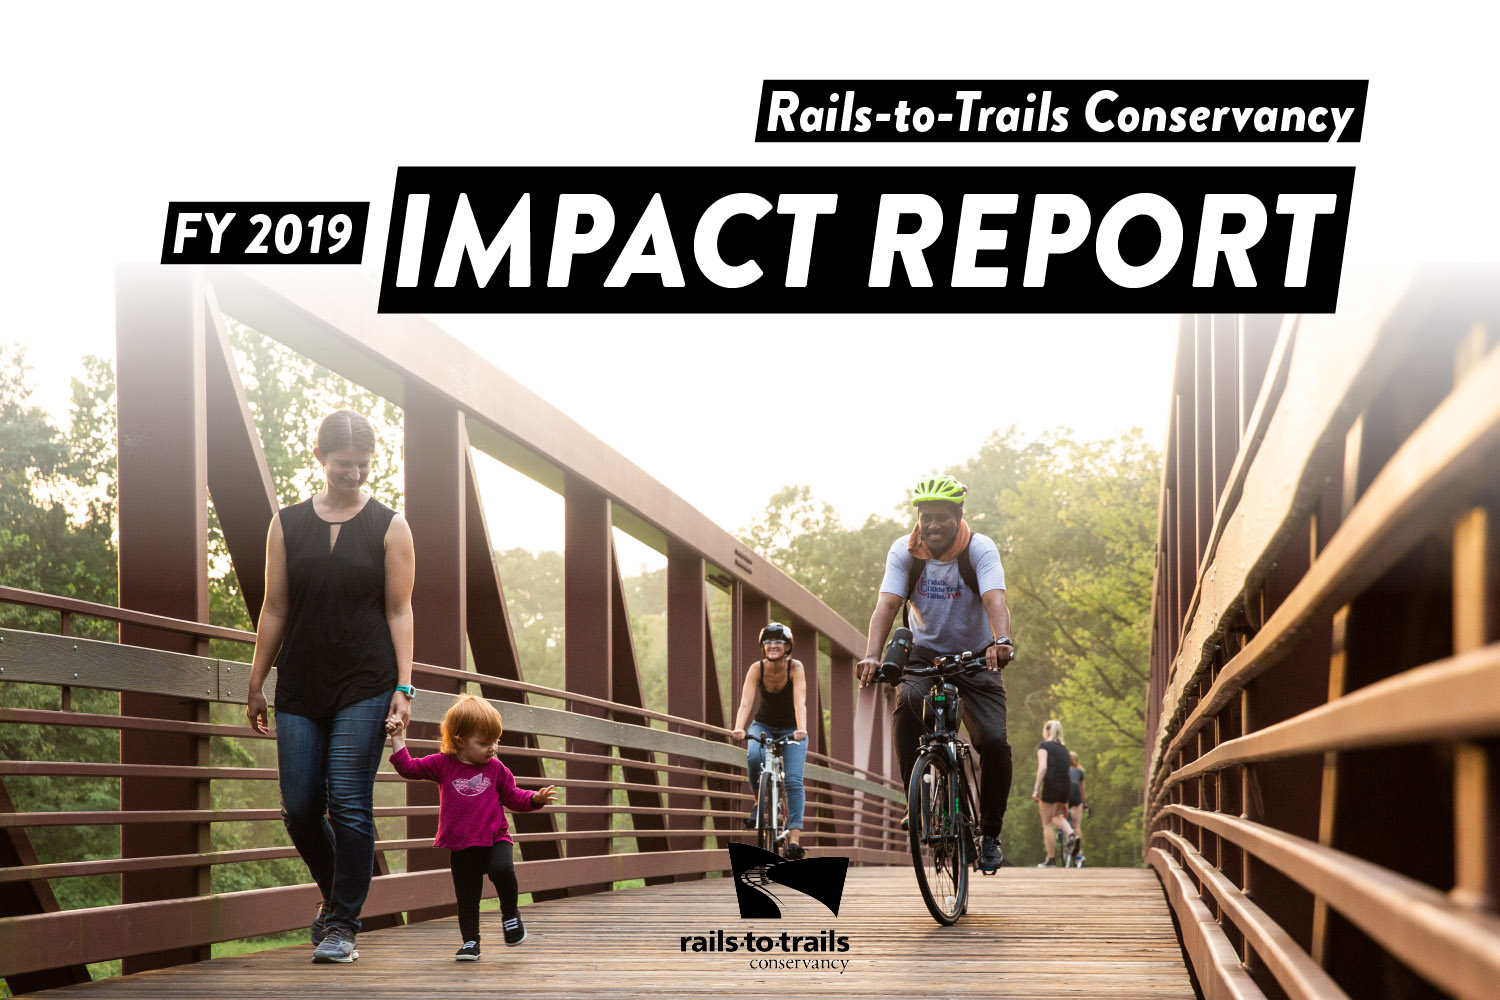 Impact report cover photo from Baltimore, MD | Photo by Side A Photography